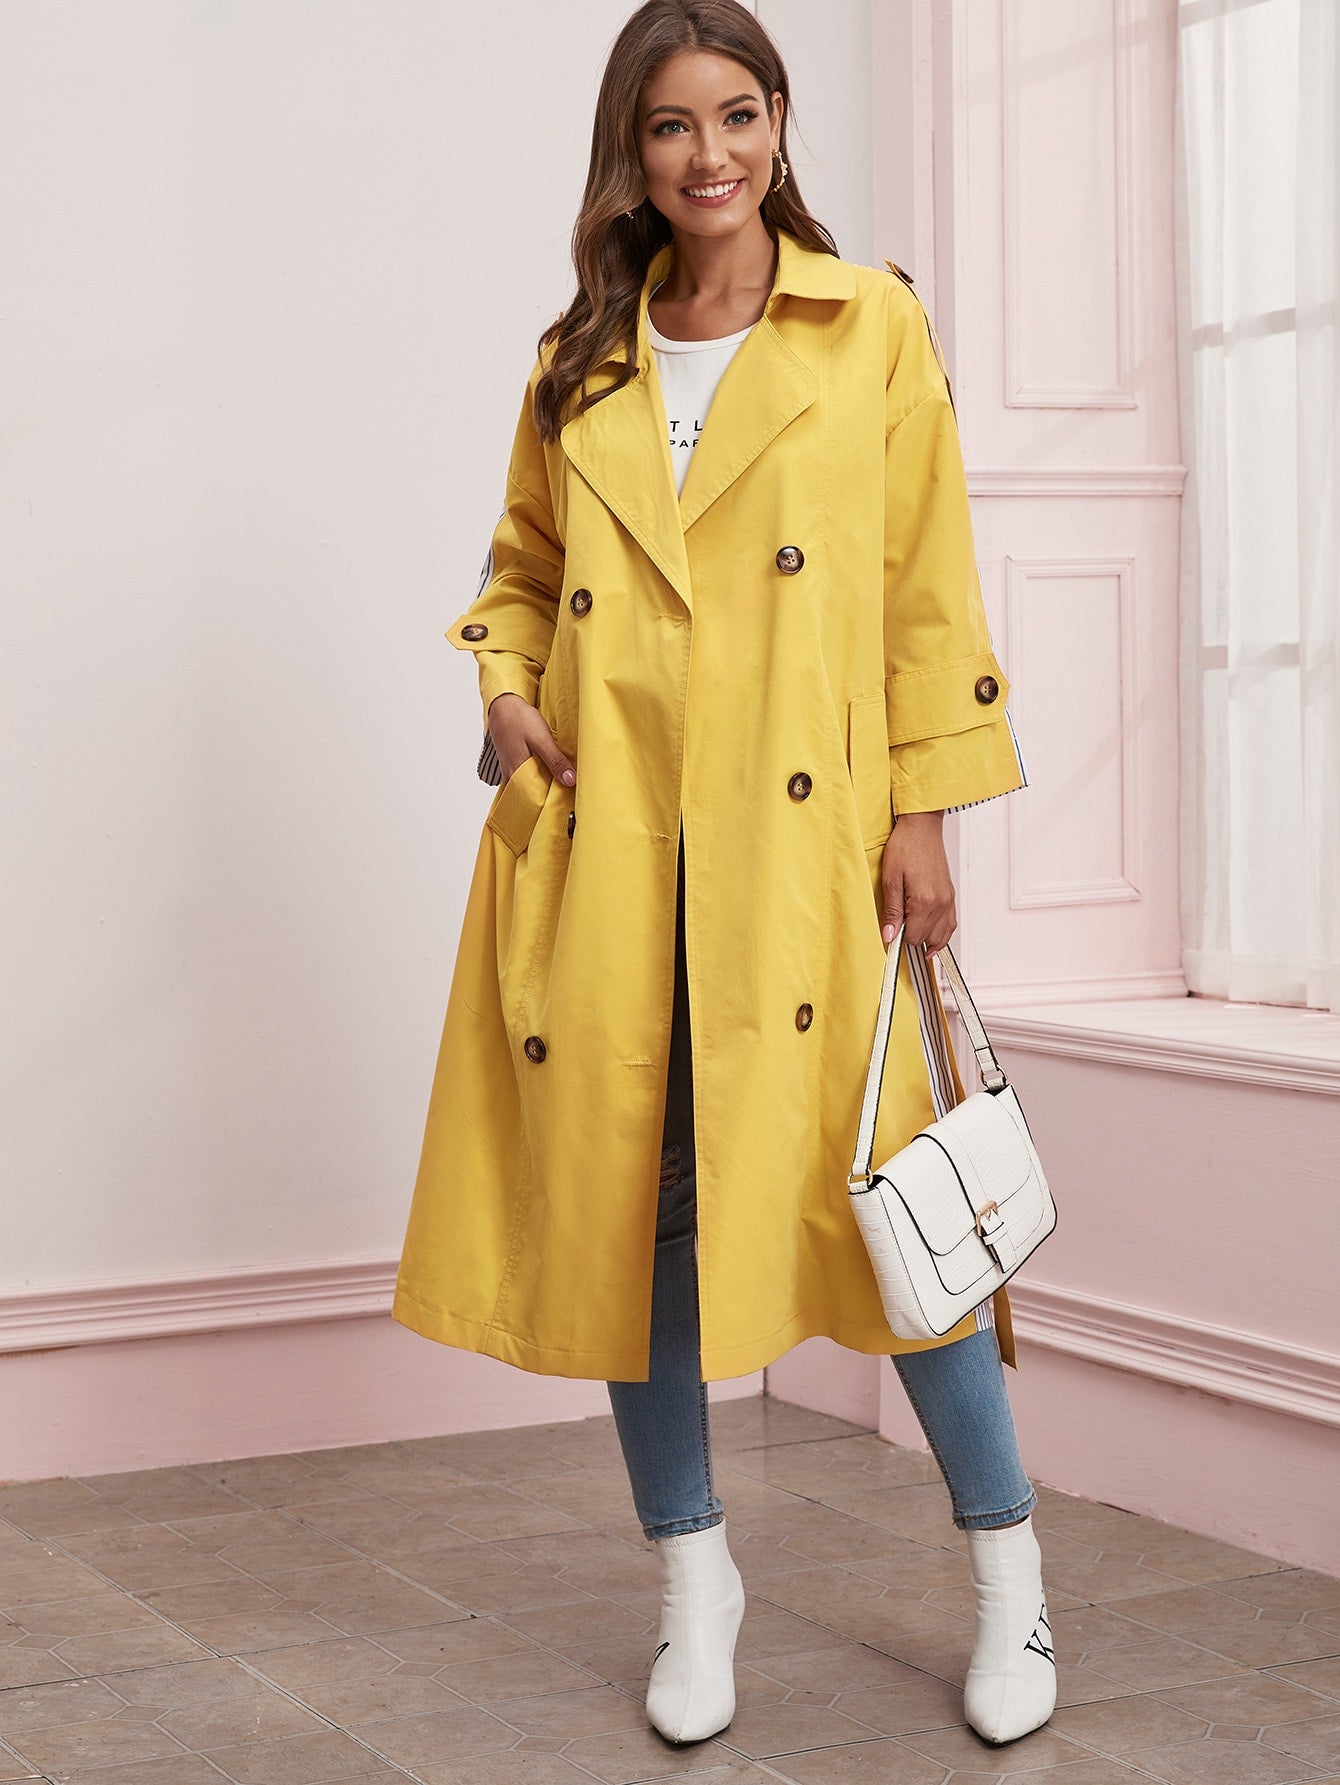 Two Tone Vertical Stripe Belted Trench Coat - FLJ CORPORATIONS